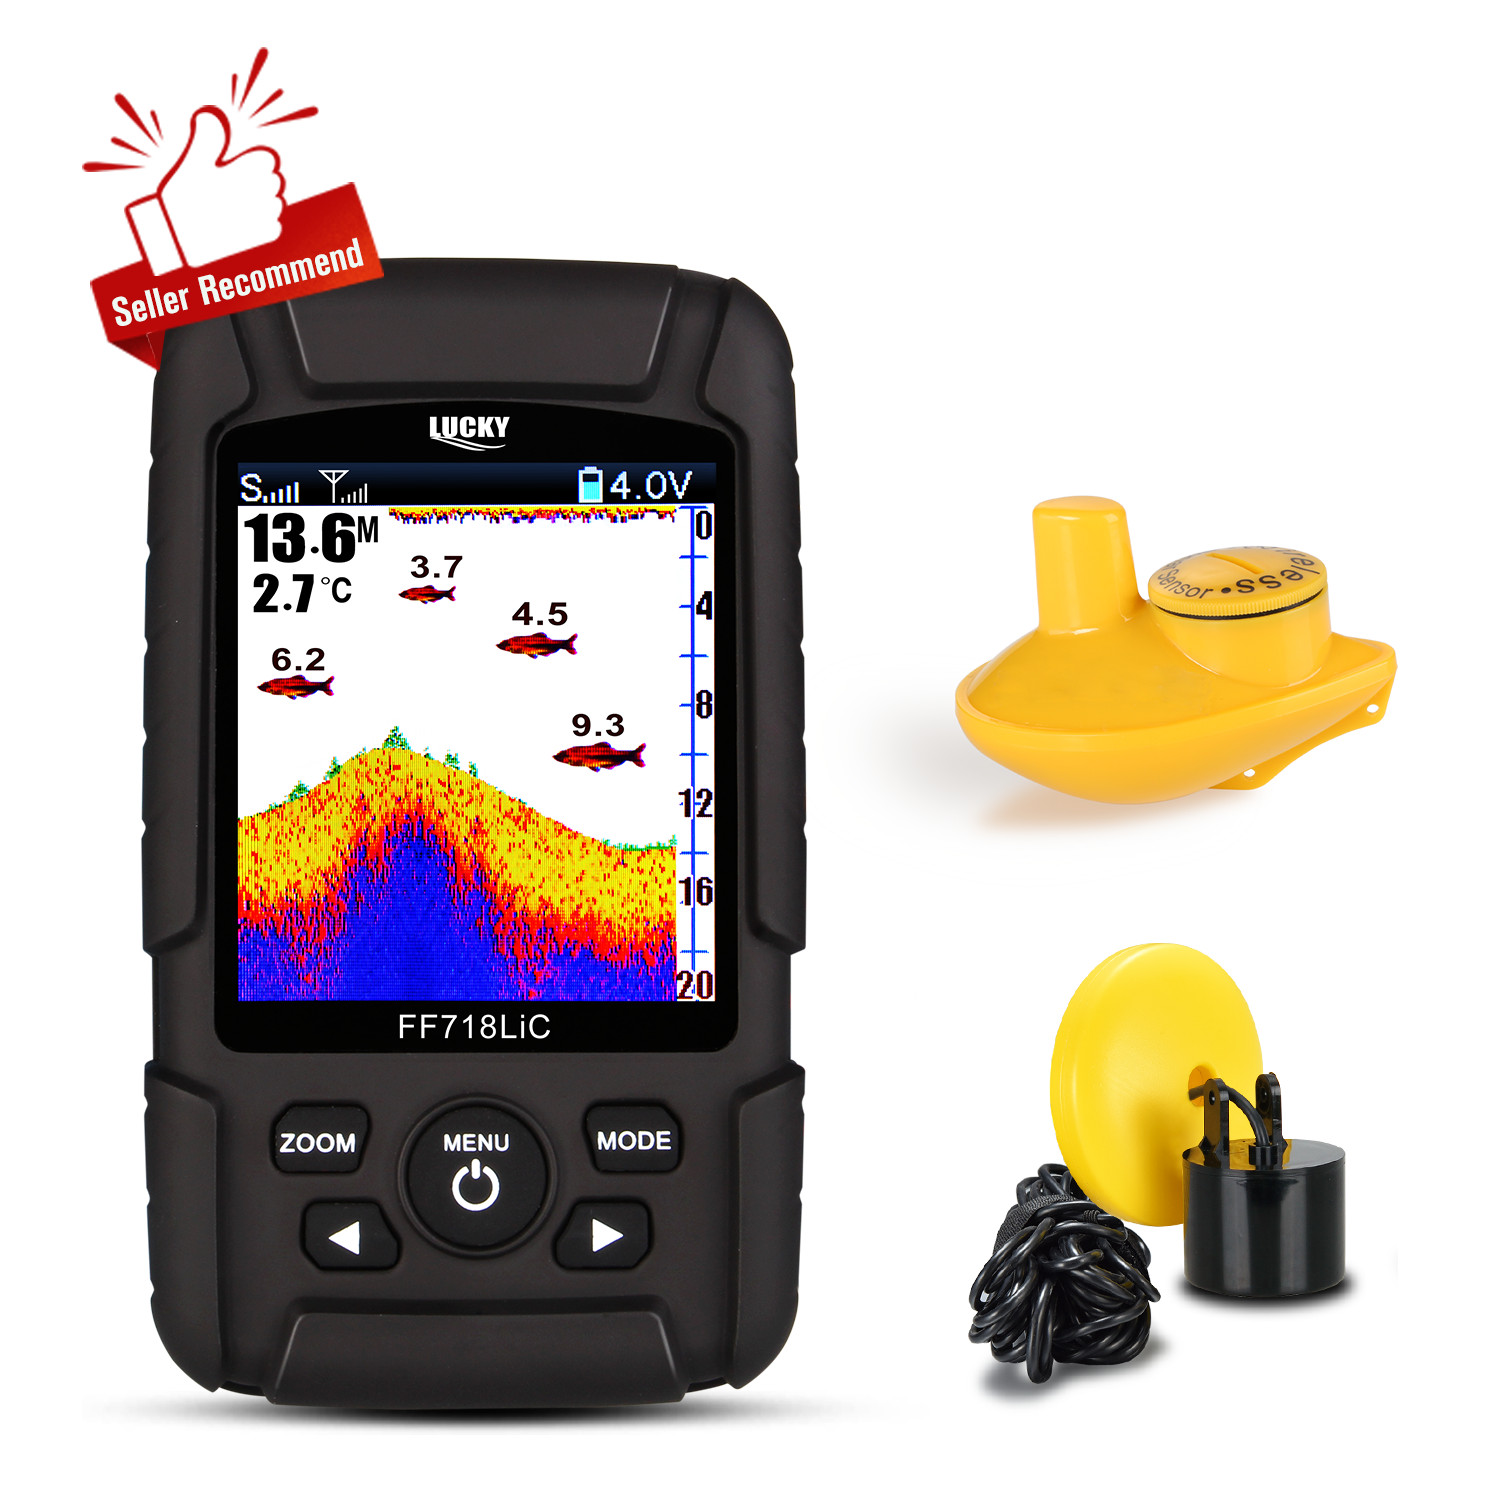 LUCKY FF718LiC depth Fishfinder Transducer 2-in-1 Wired & Wireless Sensor Portable Waterproof echo sounder for All Fishing Types